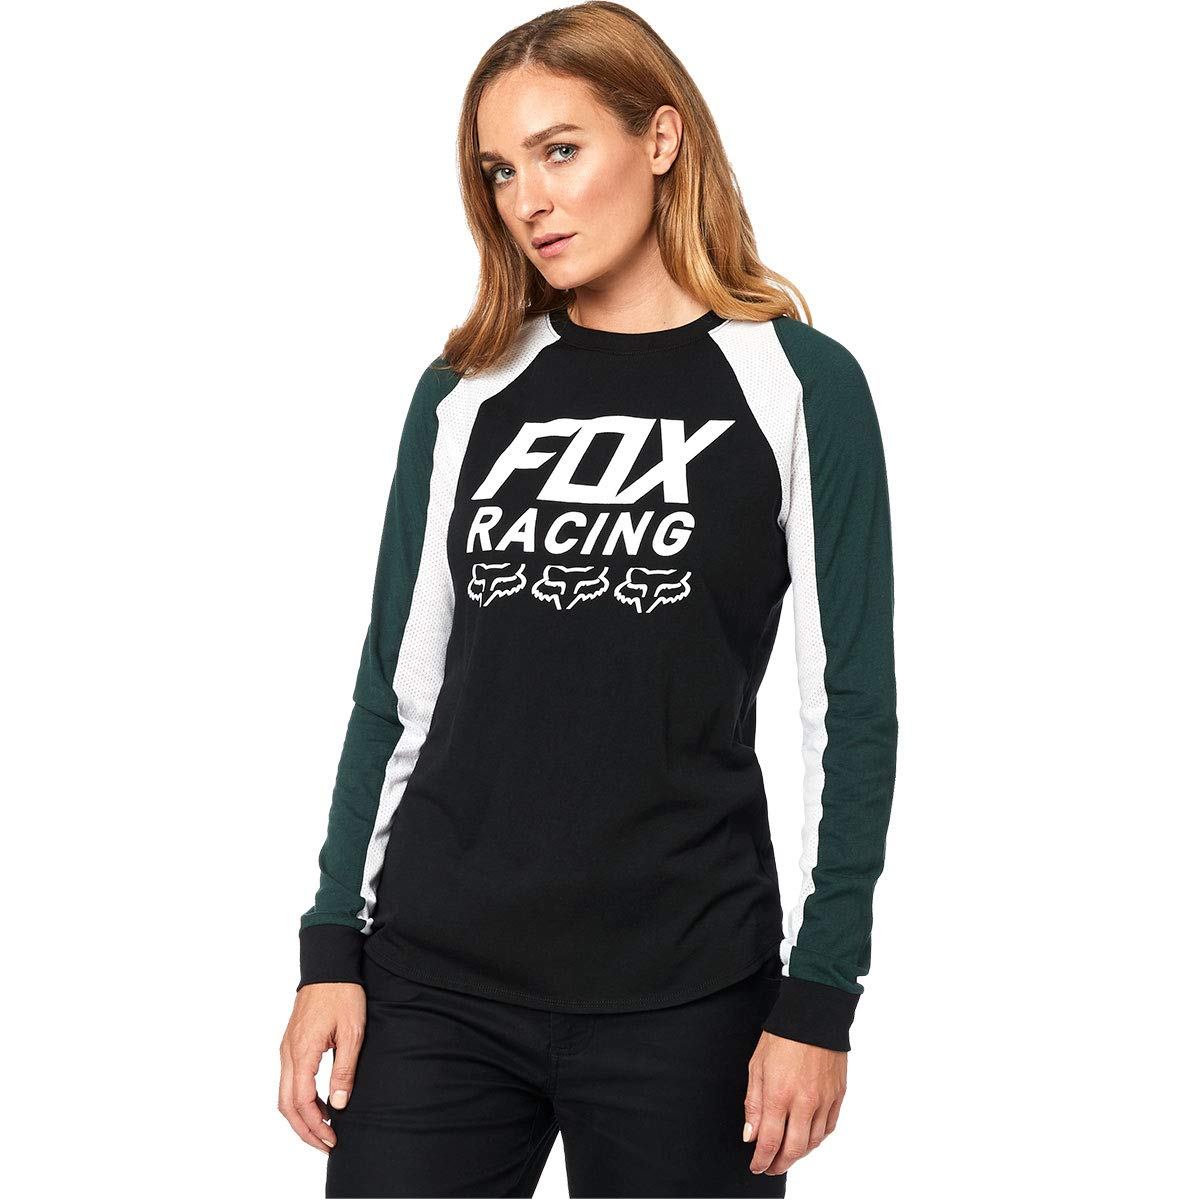 Fox Head Junior's Long Sleeve Top, Black, S by Fox Racing